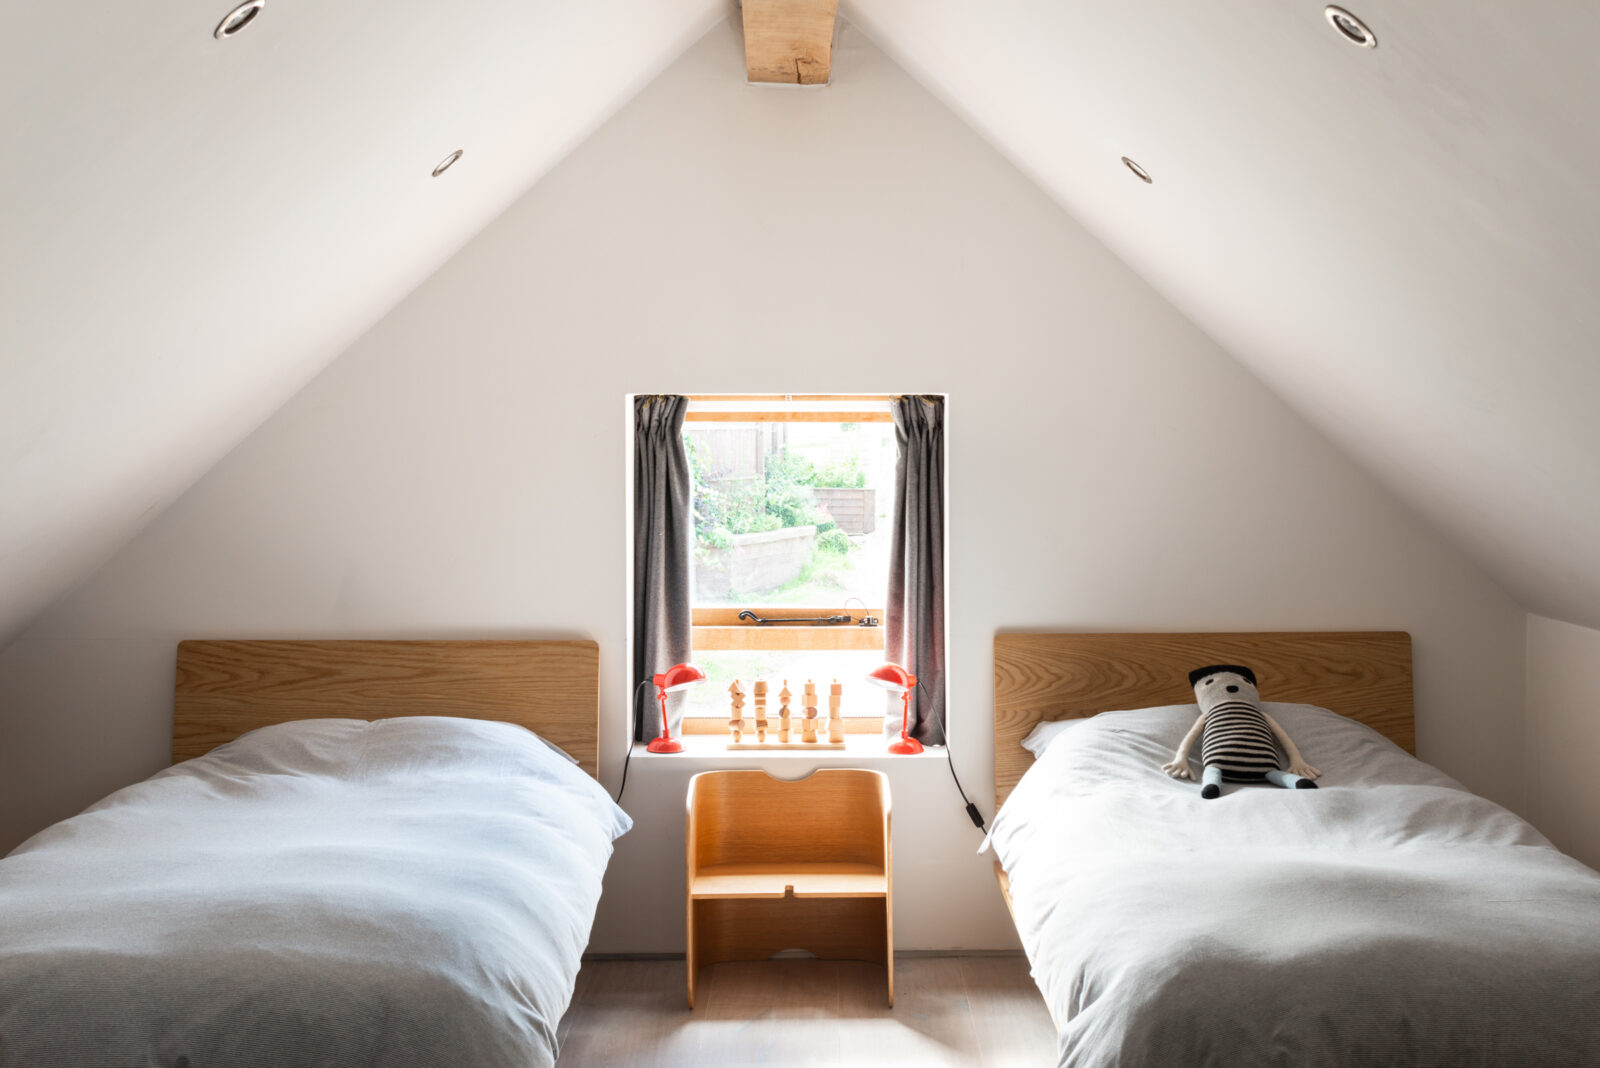 Gabled ceilings and thick oak beams add character in the bedrooms.